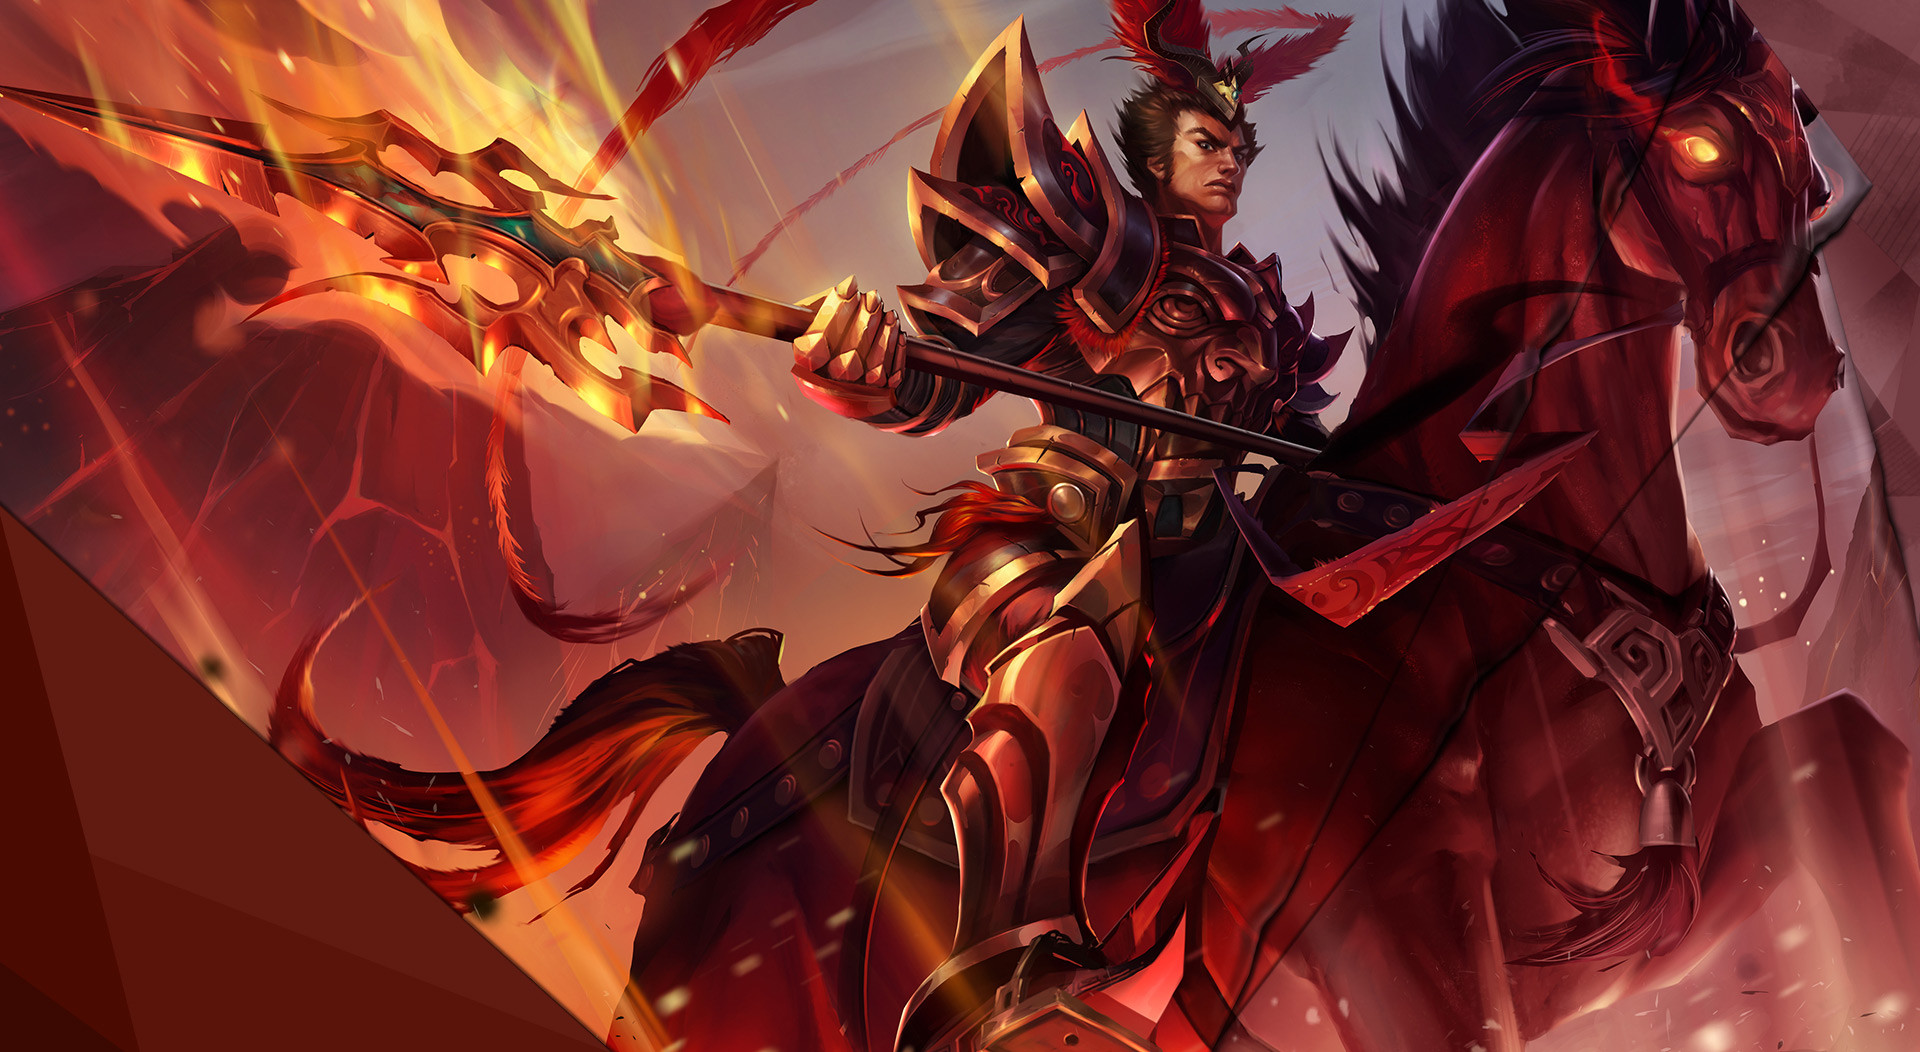 League Of Legends Dunkmaster Darius Wallpaper Hd Resolution Is Cool Wallpapers